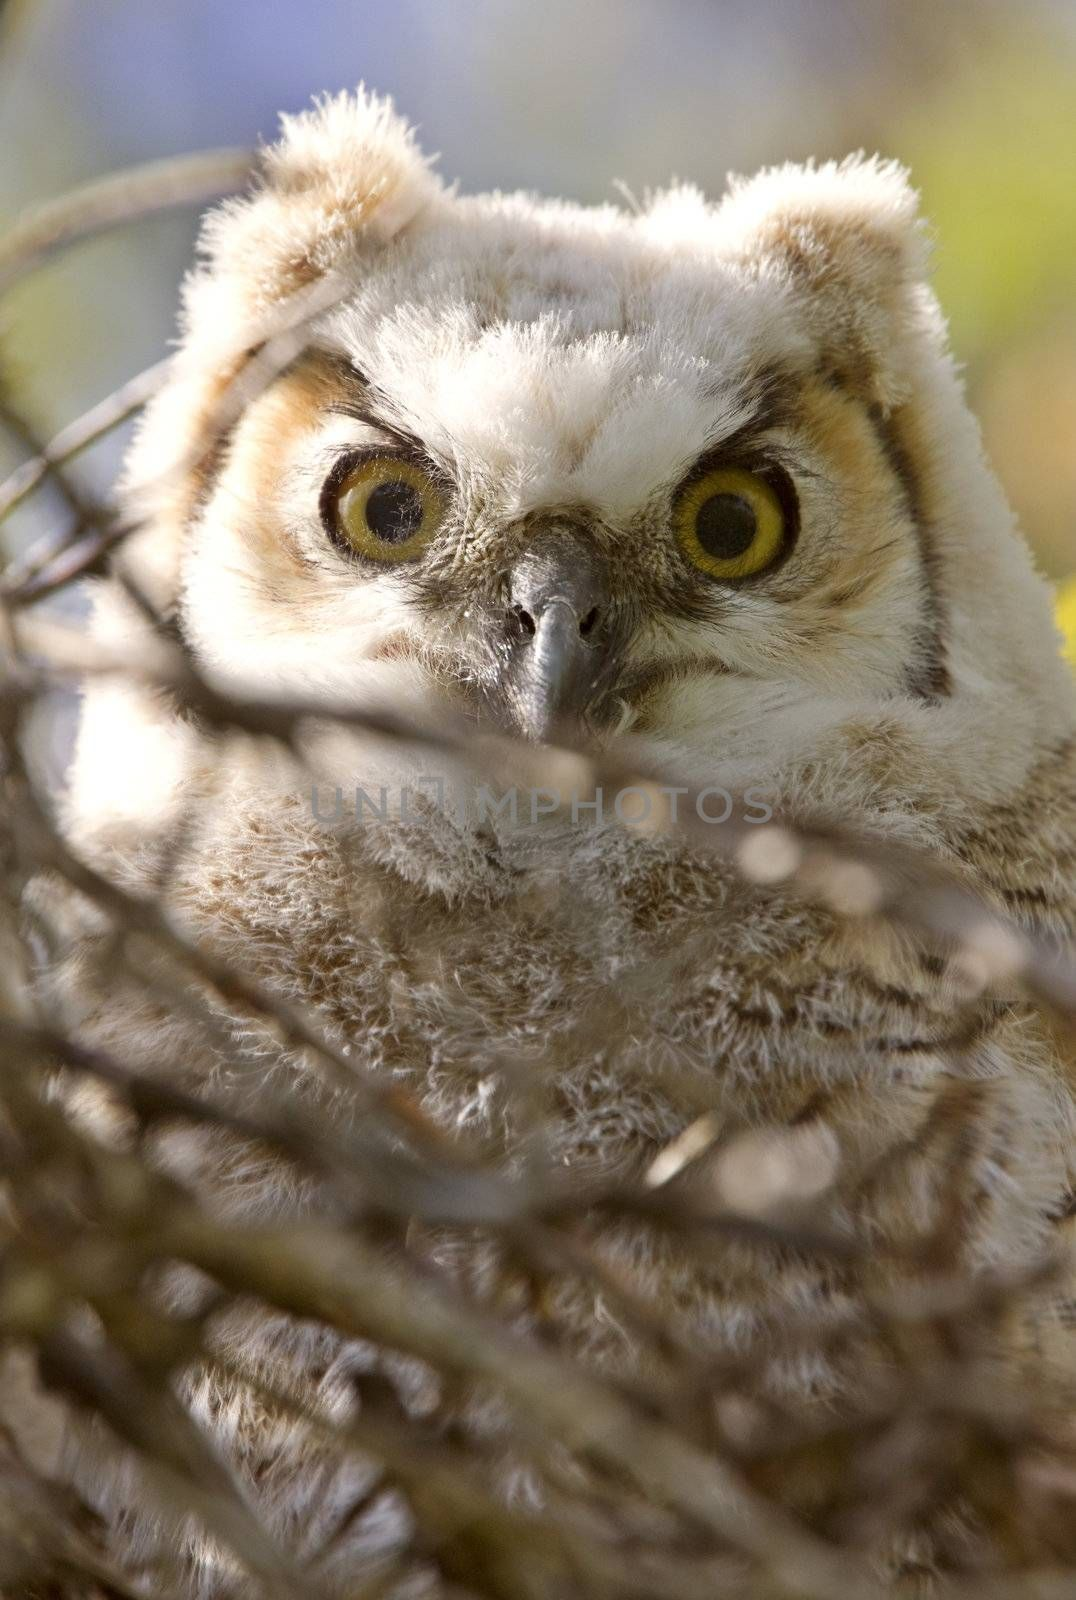 Great Horned Owl Babies Owlets in Nest